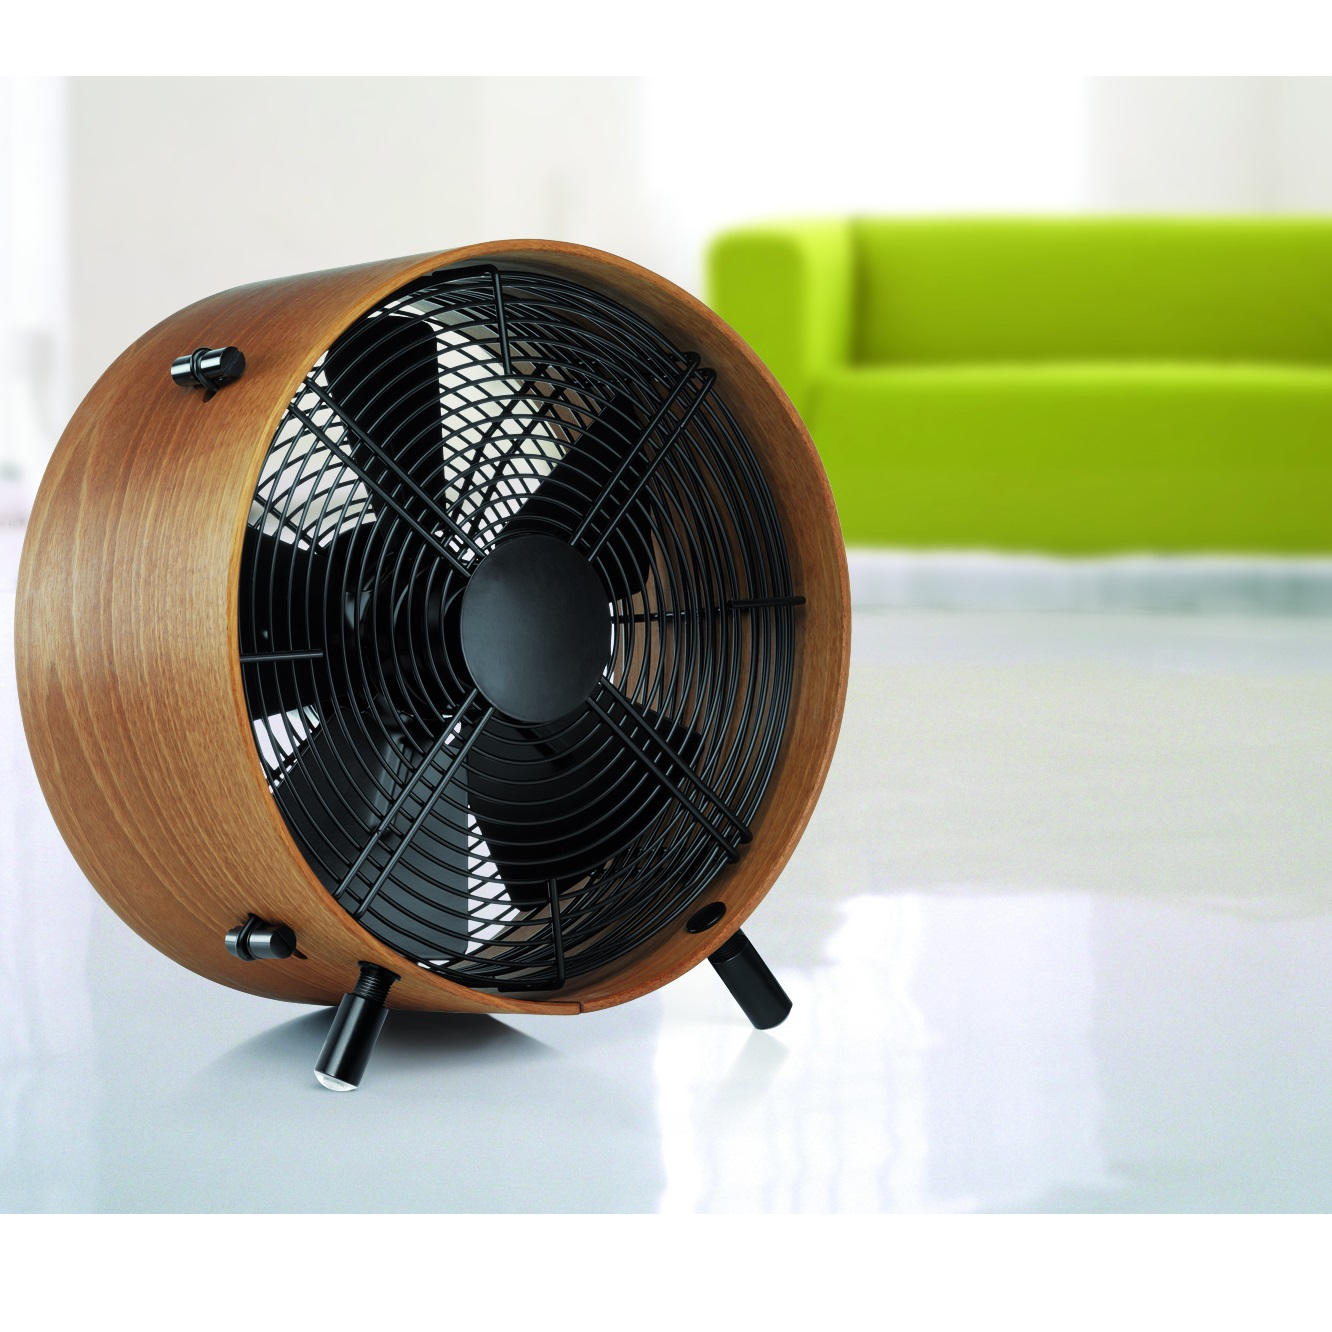 Breathe Fresh Air Choose The Best Tropical Fan: Best Portable Fans To Consider This Summer